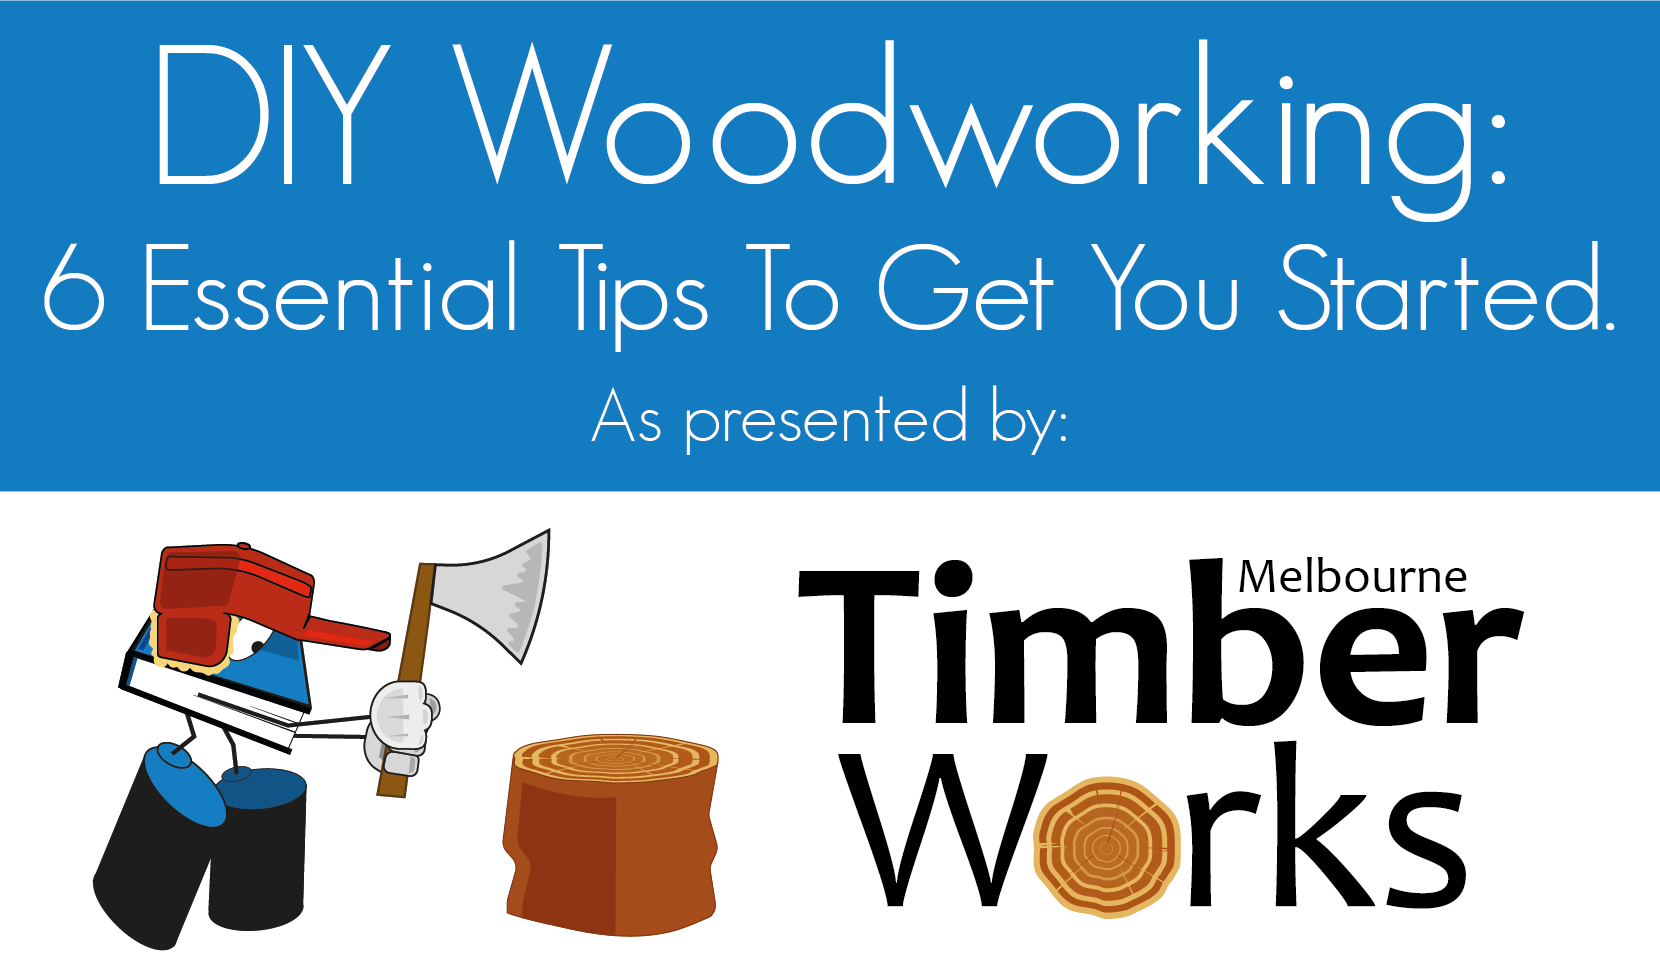 Melbourne Timberworks The Short Advice